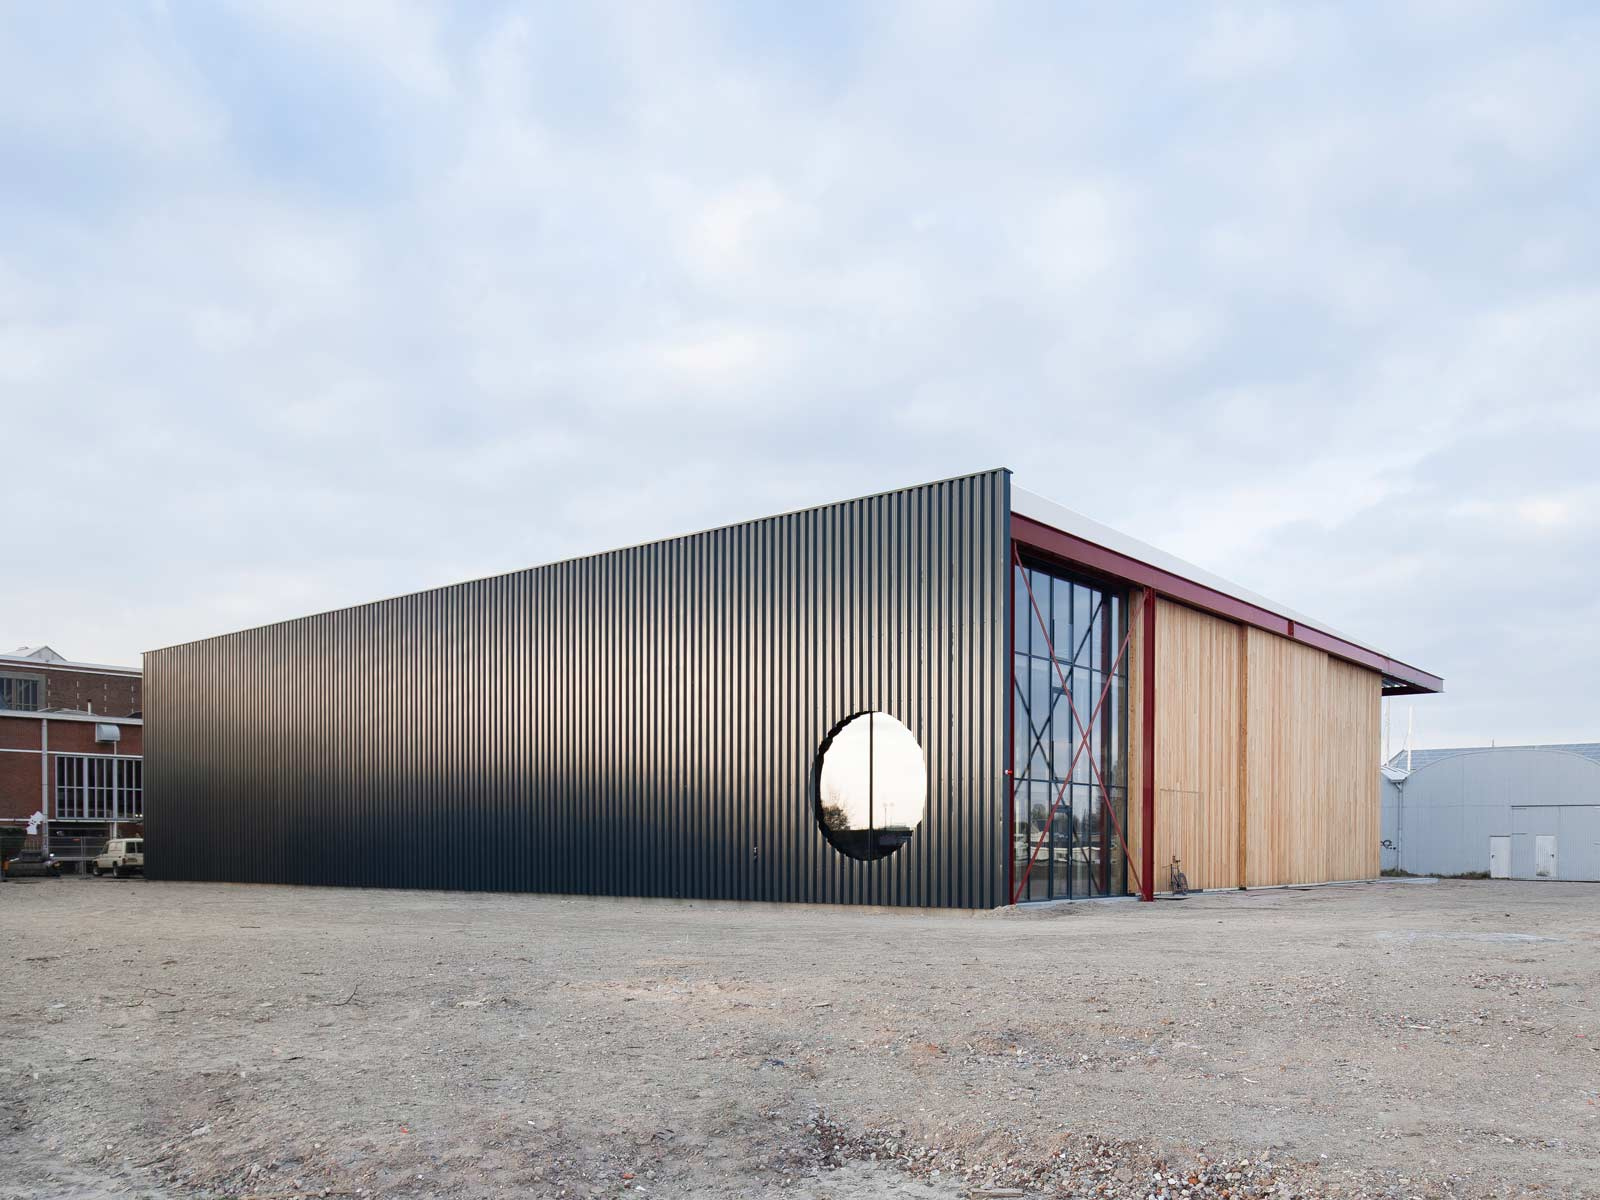 exterior photo with evening light showing facade with circular window in steel cladding by BETA architects Evert Klinkenberg Auguste Gus van Oppen